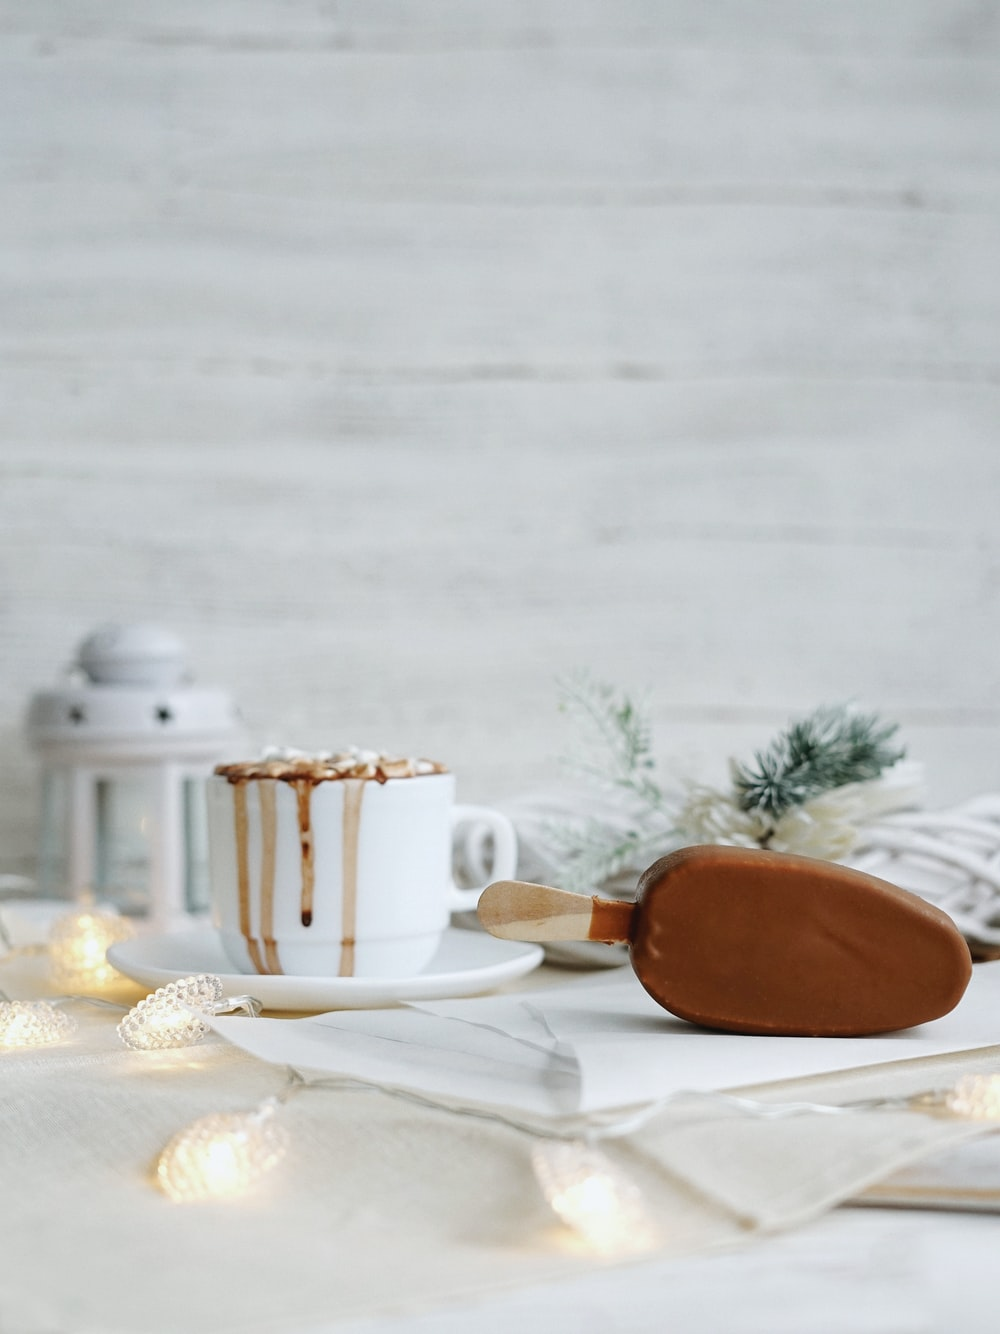 coffee in white ceramic cup on table